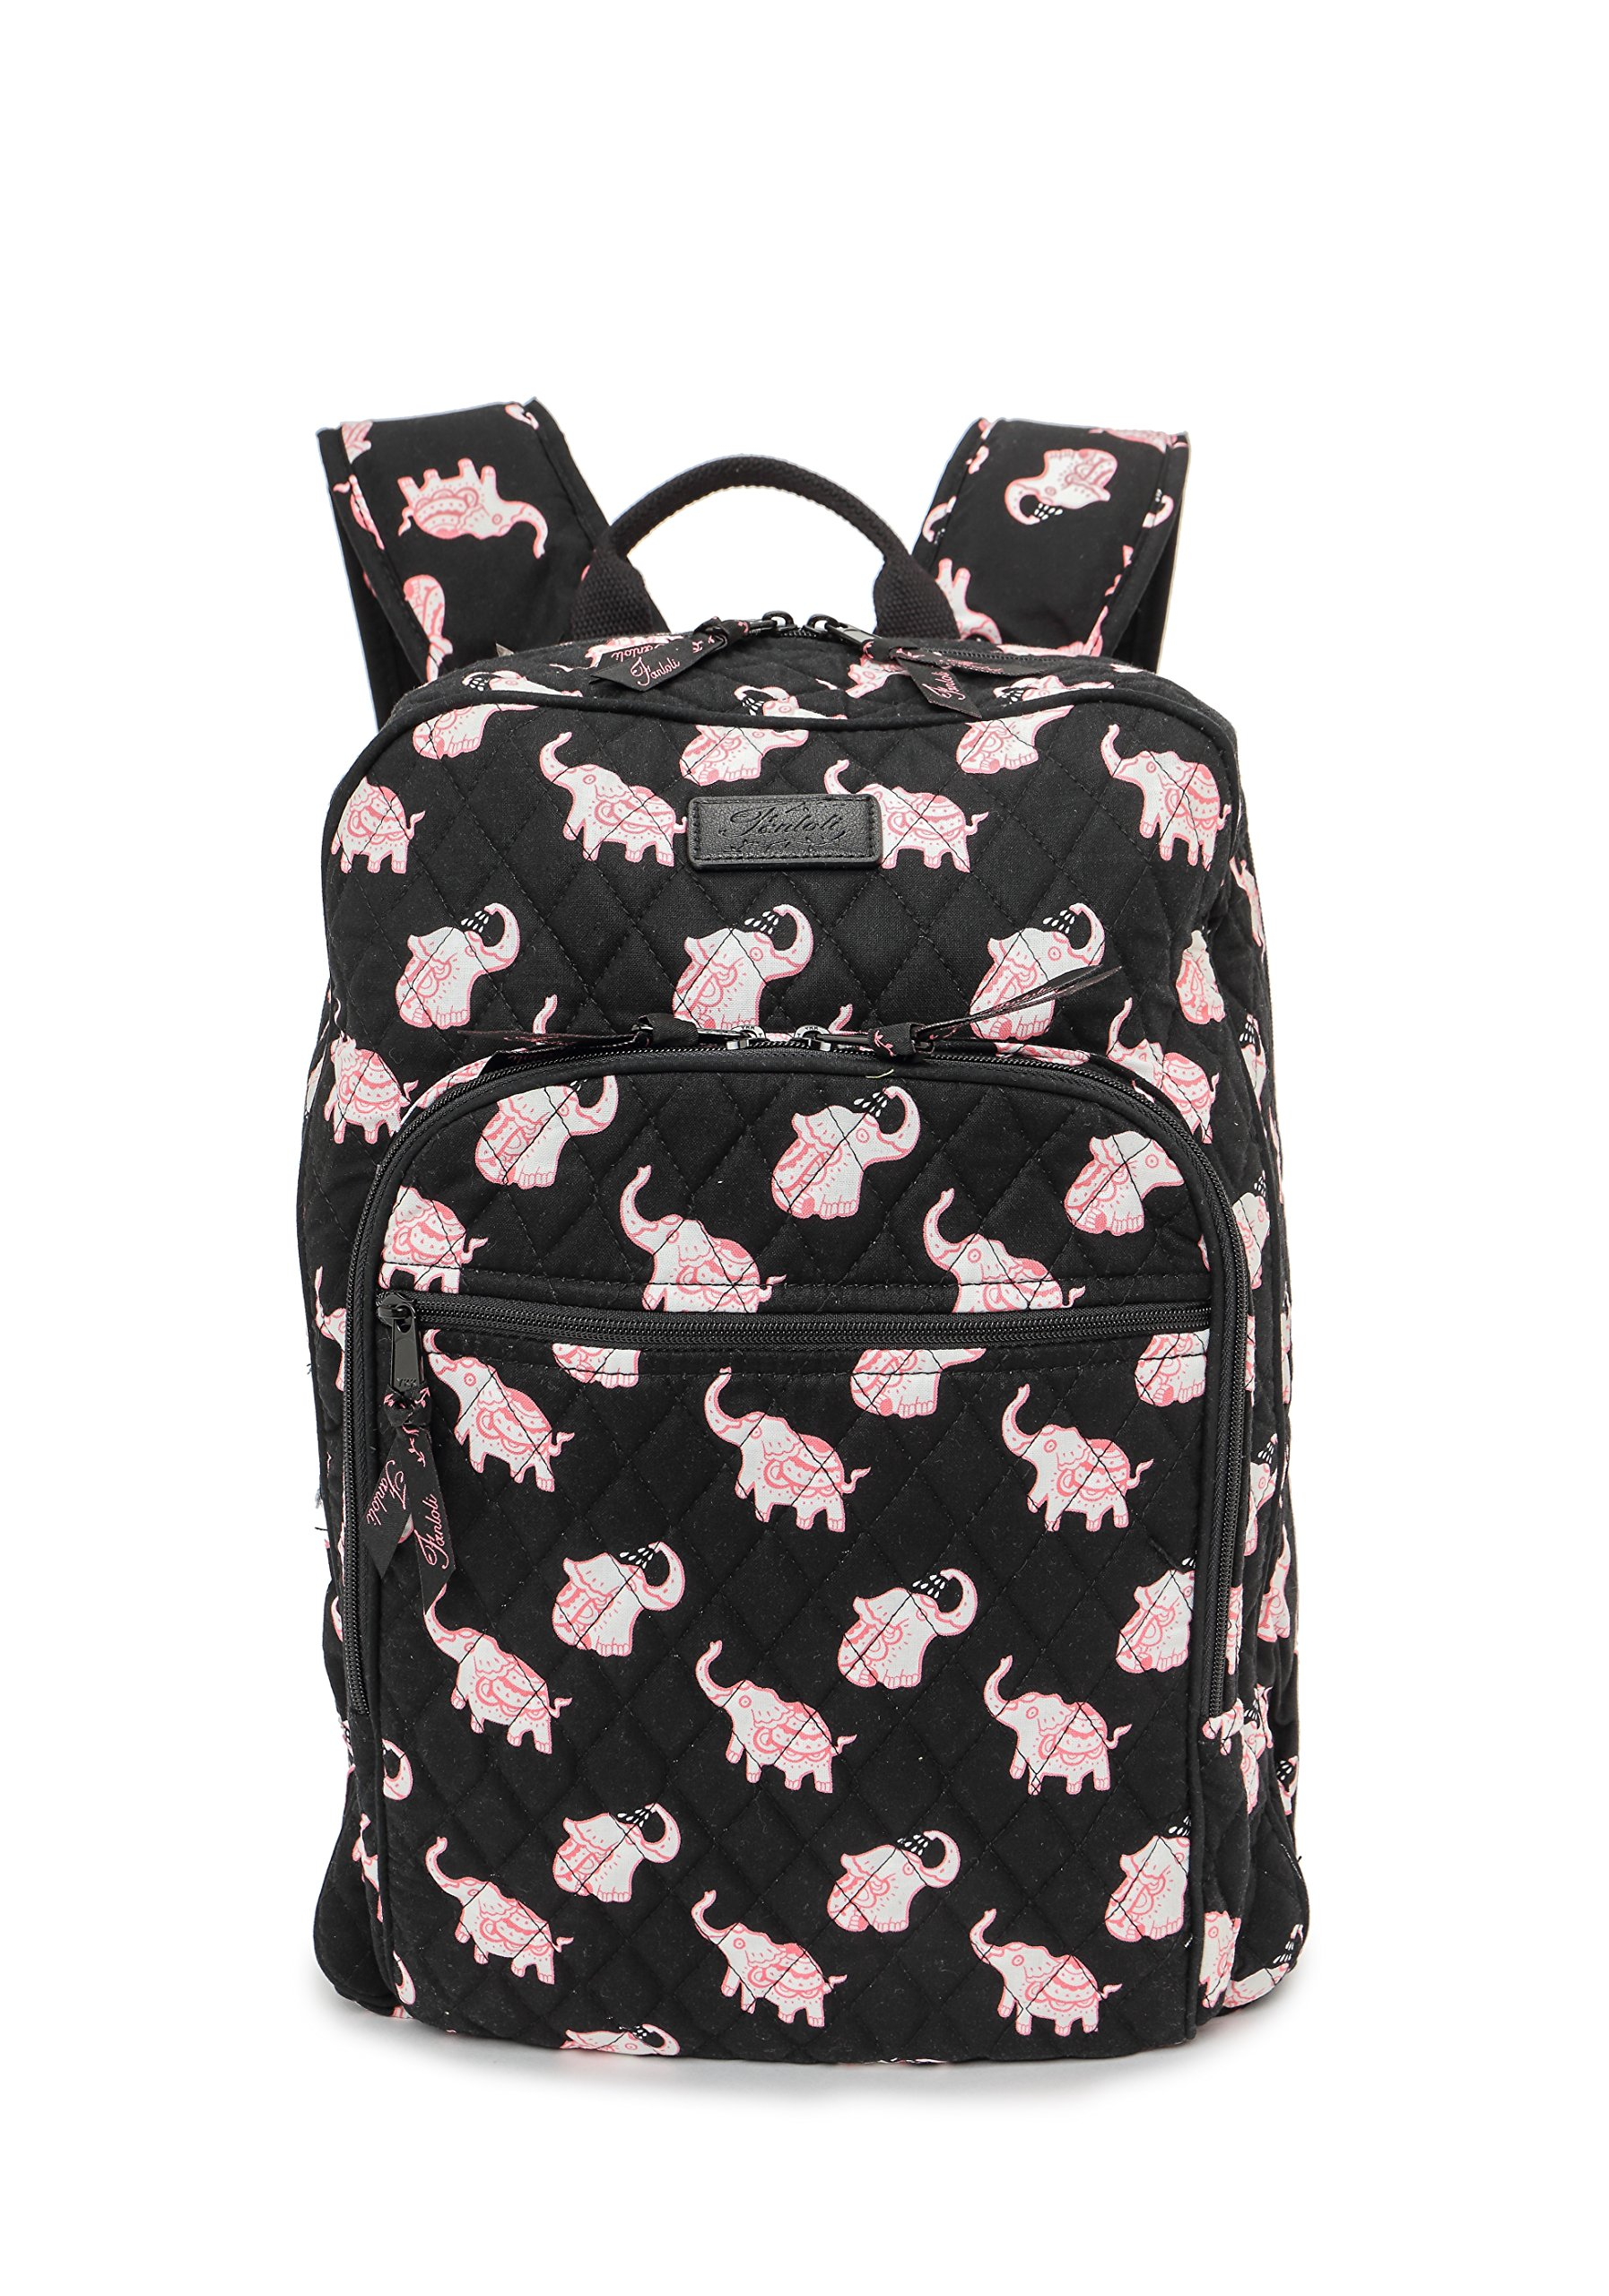 Fanloli Quilted Cotton College Travel Backpack in Happy Elephant